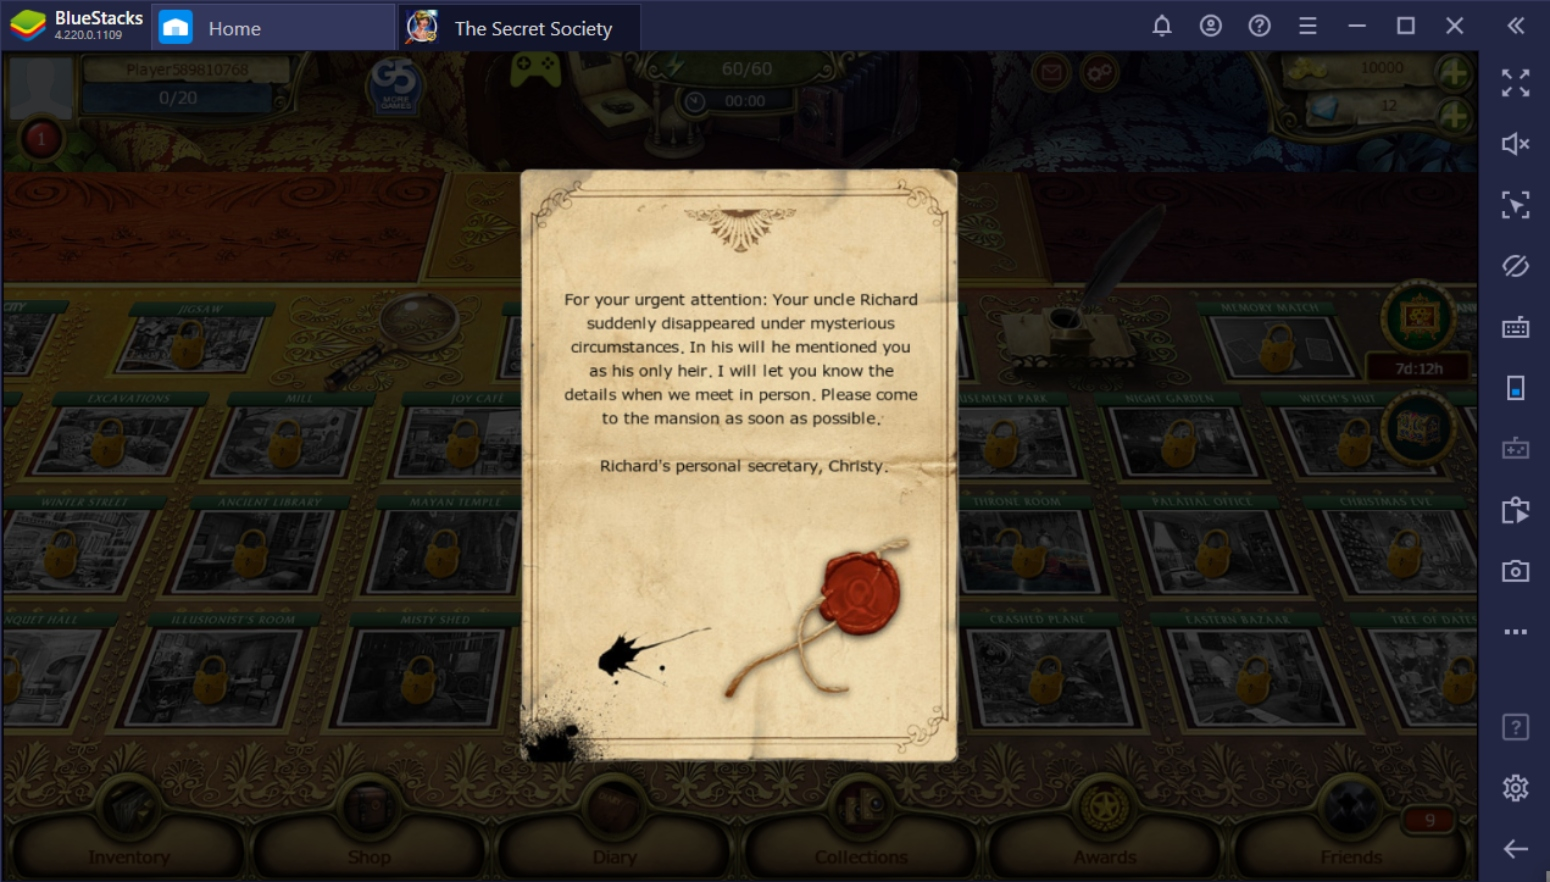 Installing the Secret Society on PC with BlueStacks